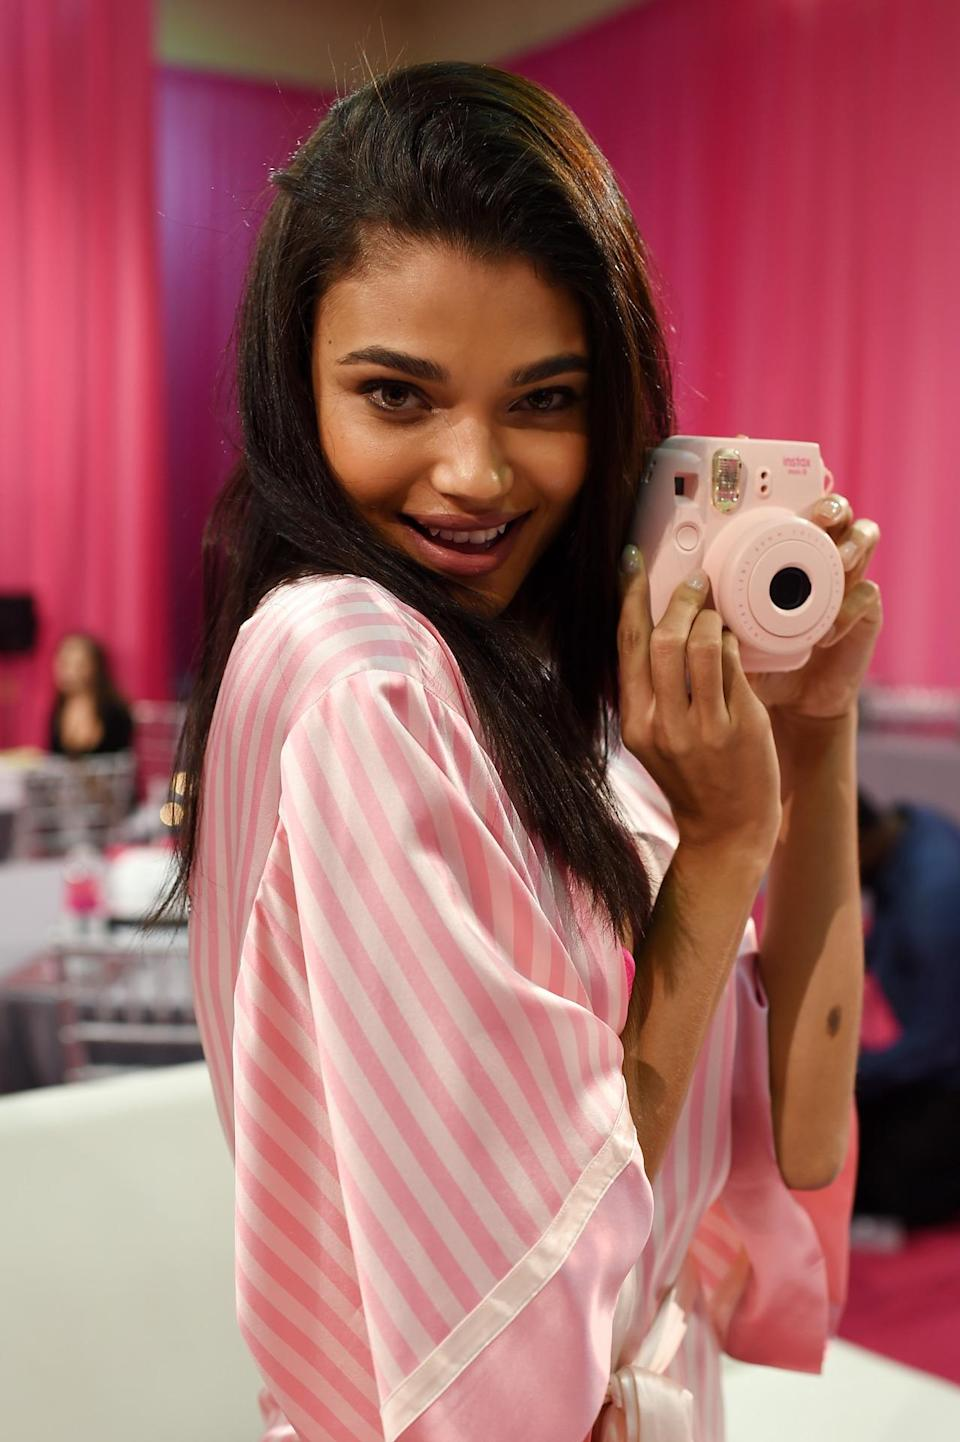 <p>Brazilian Daniela Braga takes a photo with a pink camera while wearing a pink and white robe while someone else takes a picture of her with yet another camera. </p>